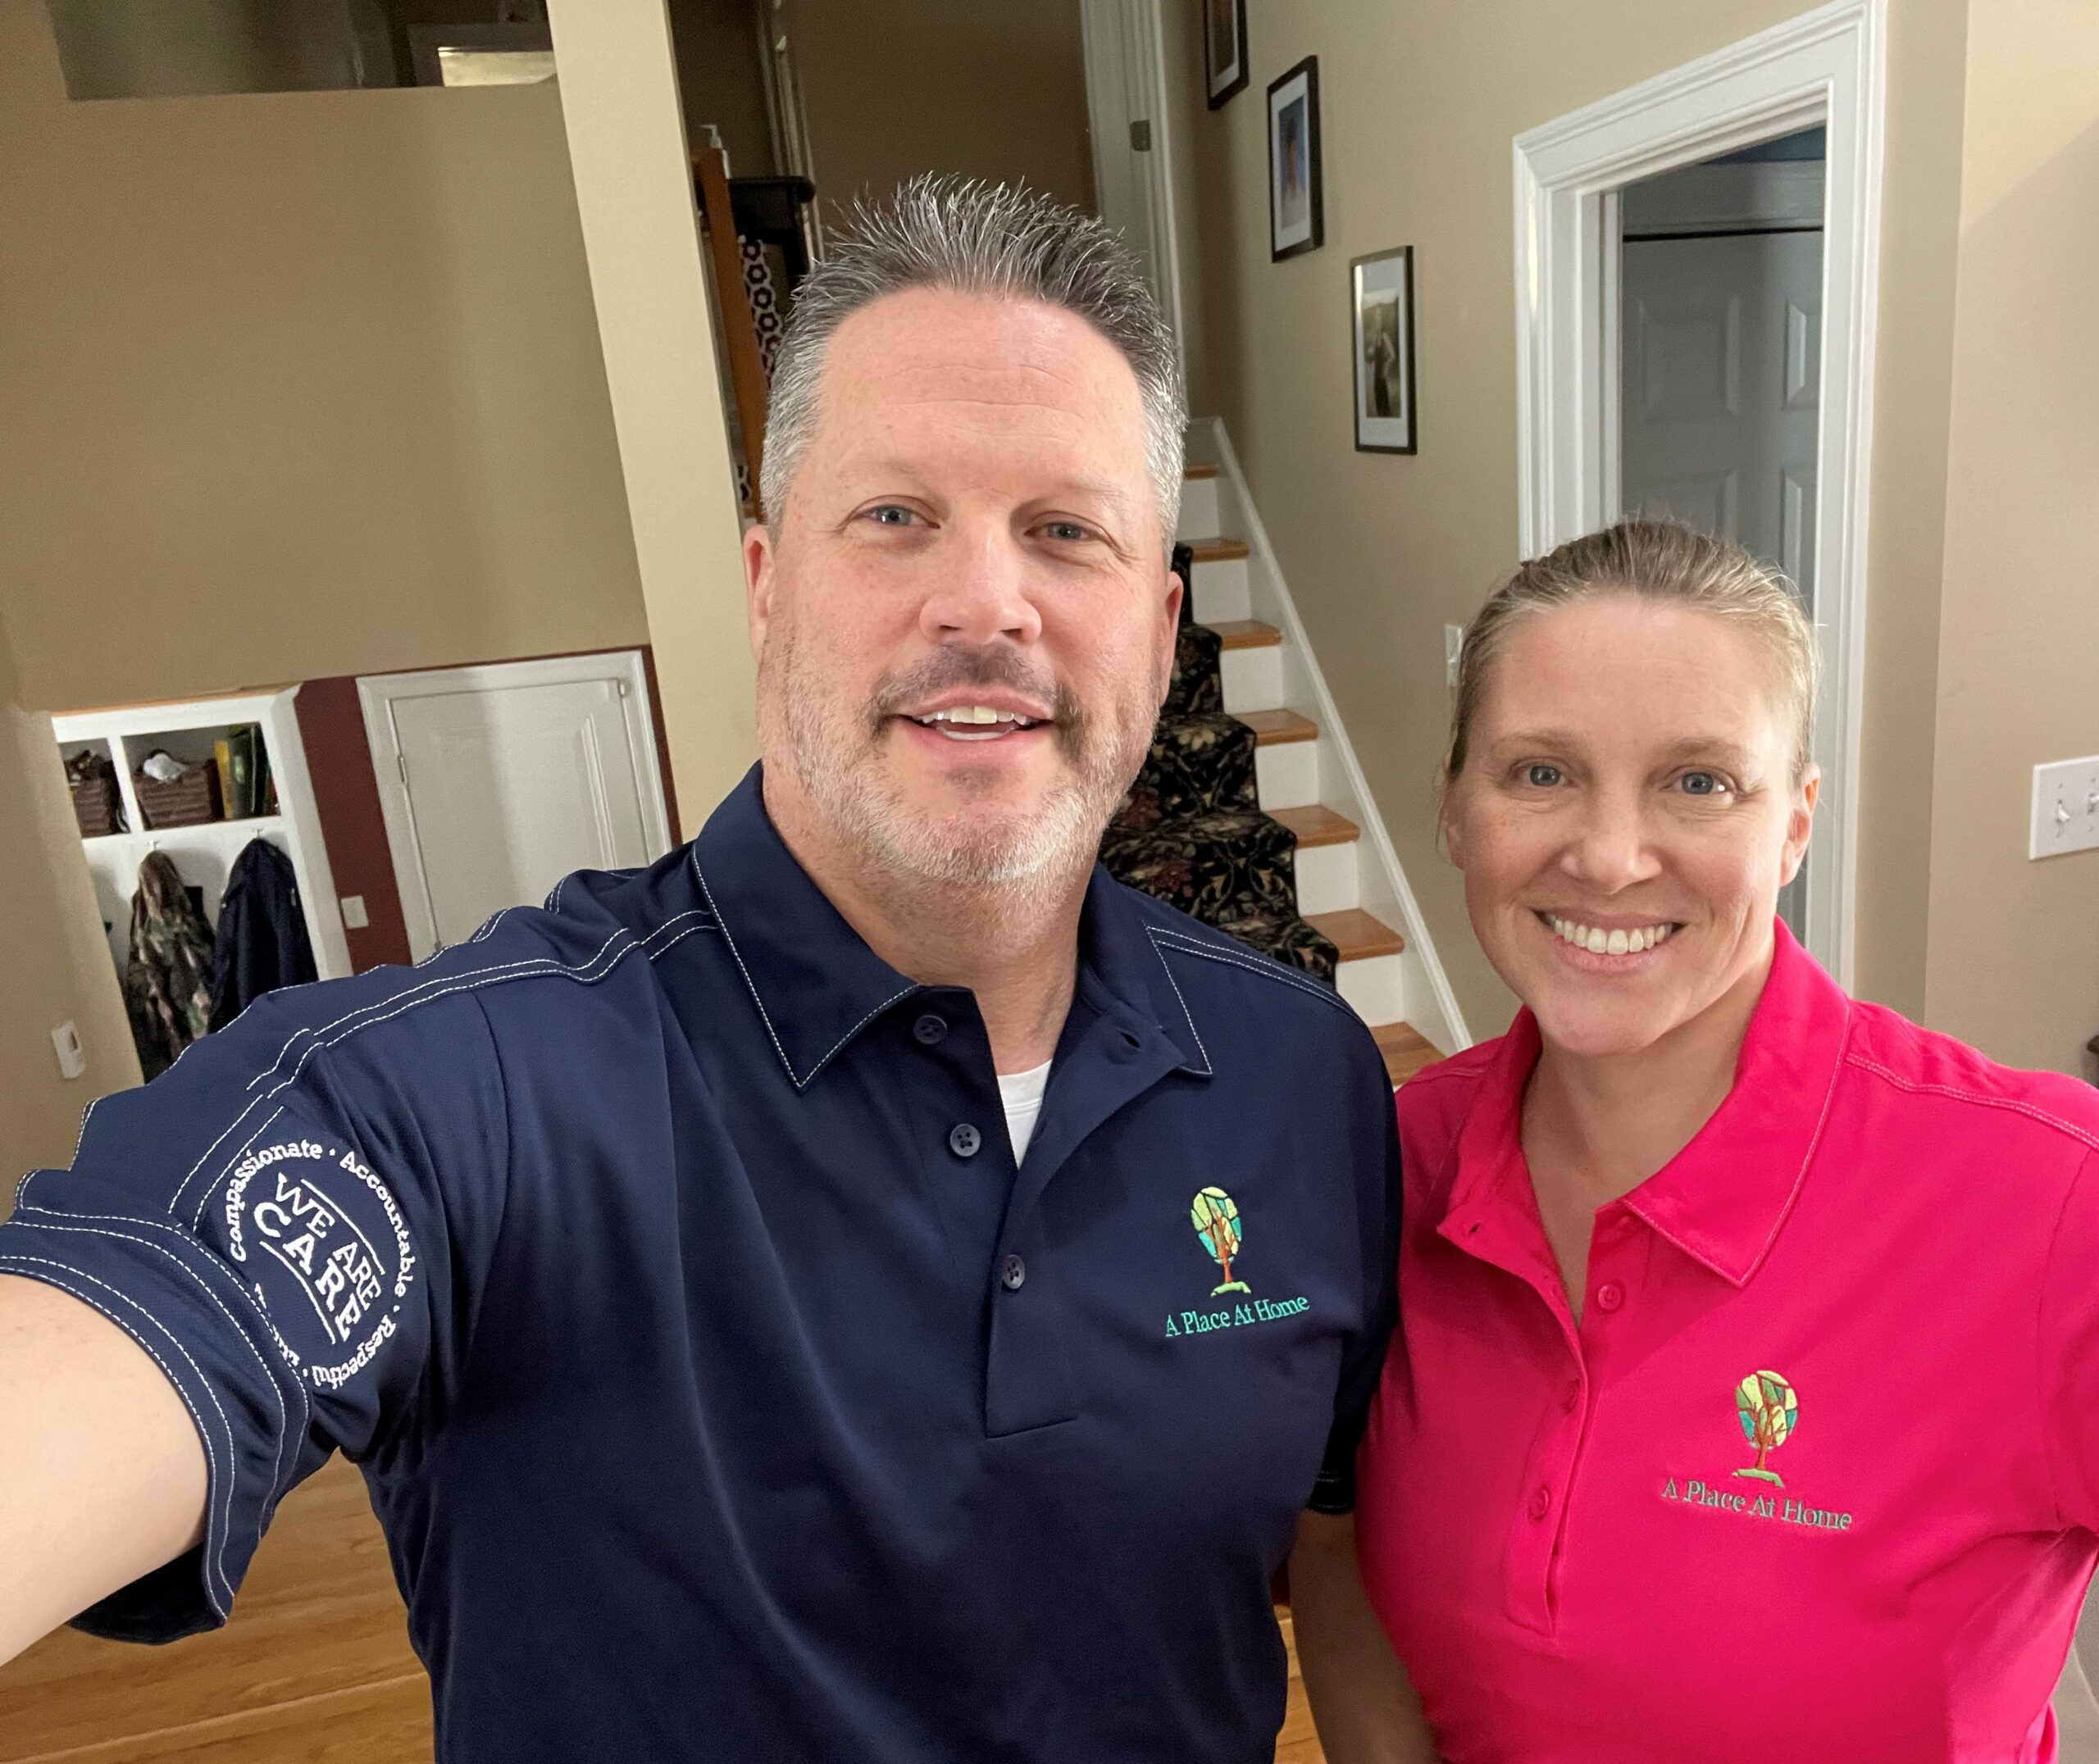 A Place At Home Franchisee Owners